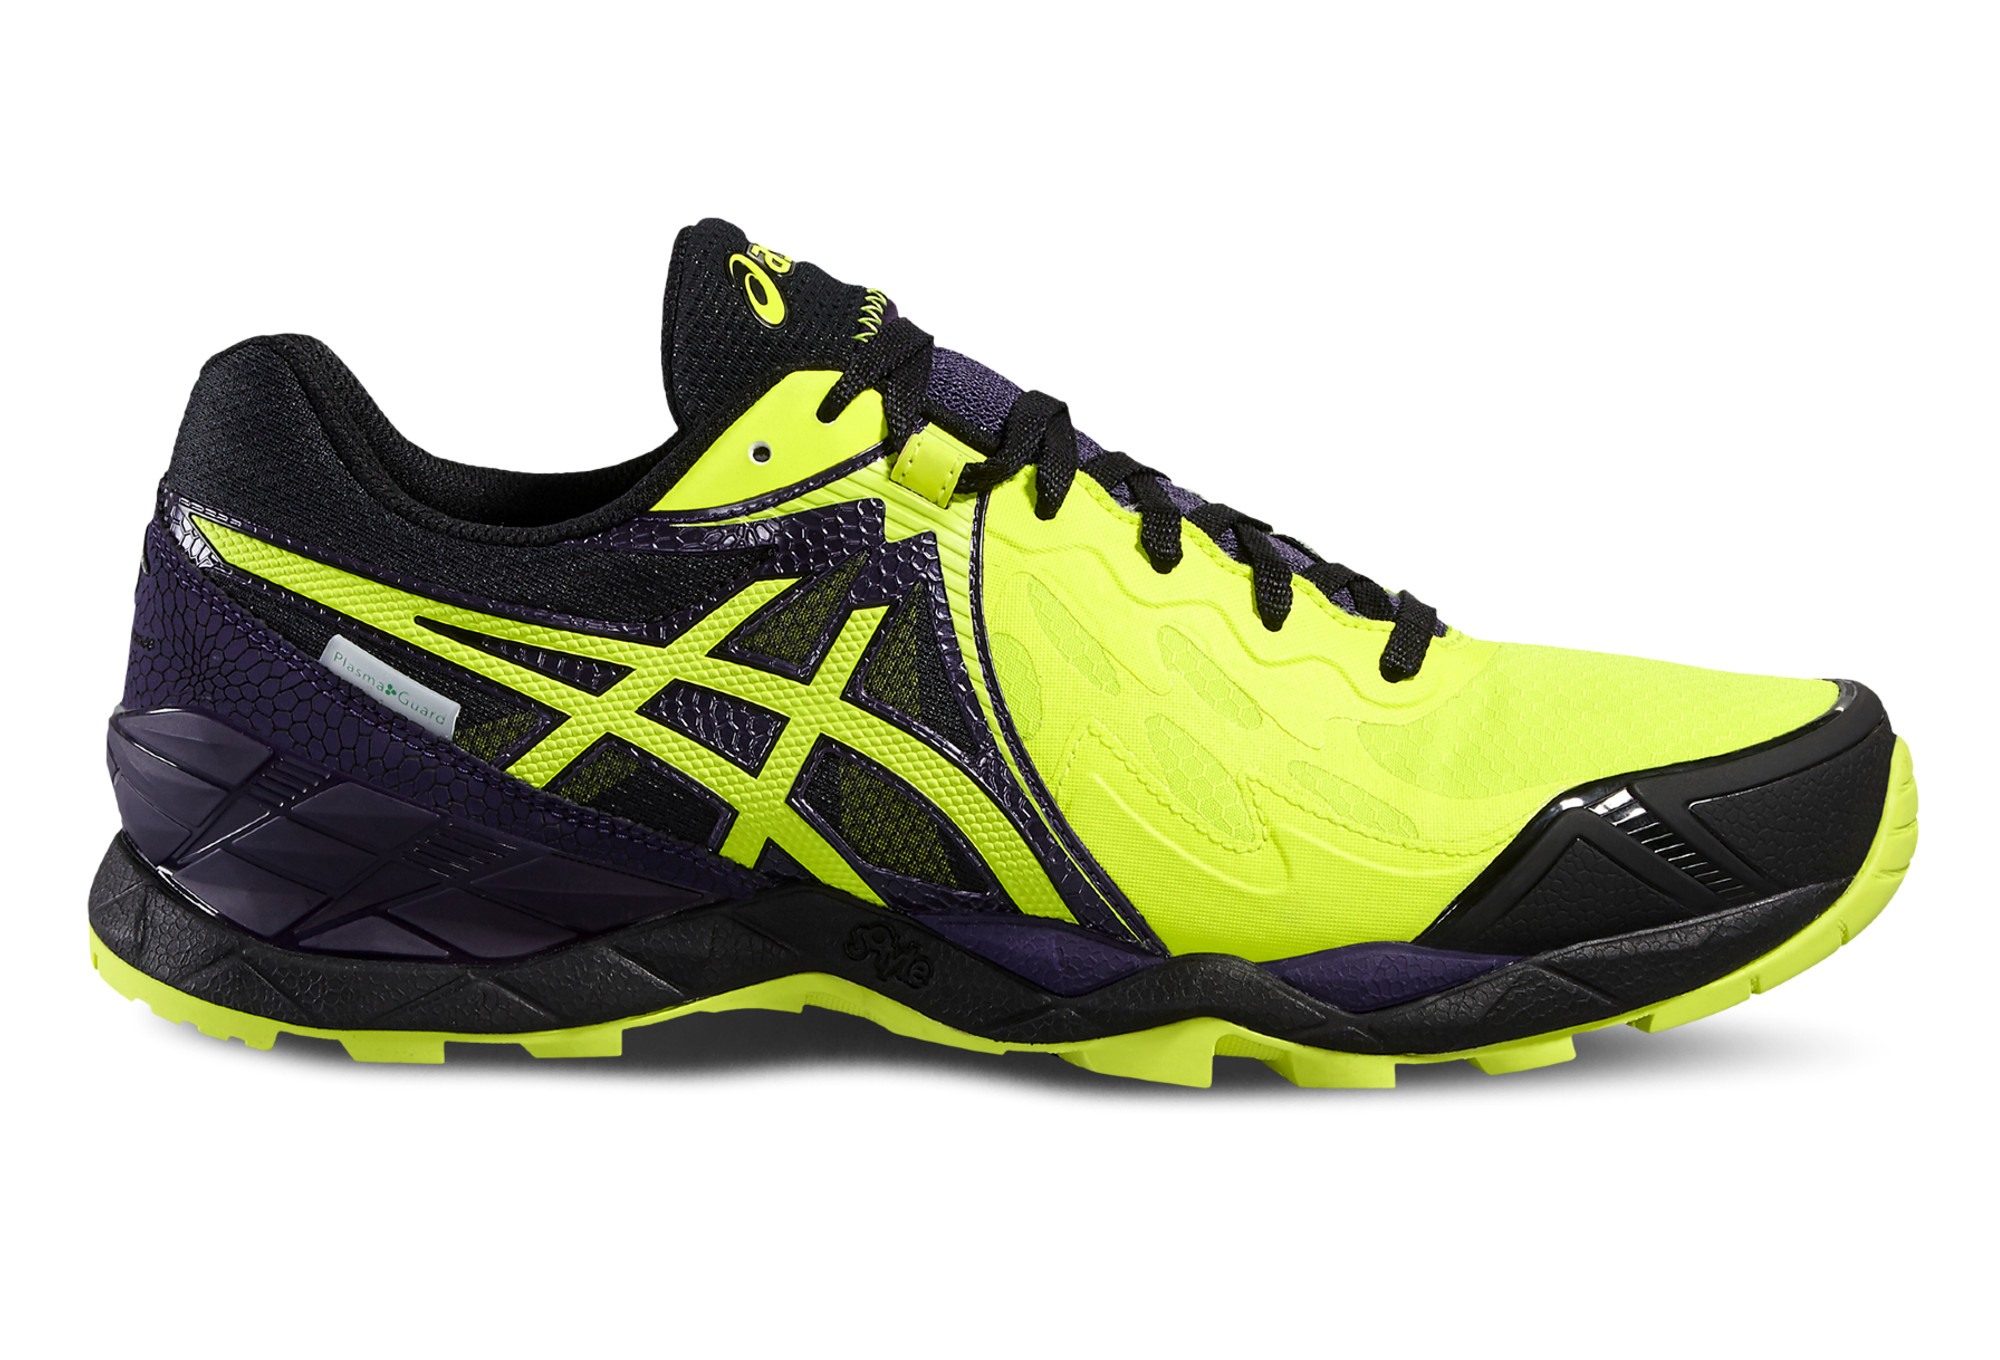 chaussures de trail asics gel fujiendurance plasmaguard jaune violet. Black Bedroom Furniture Sets. Home Design Ideas